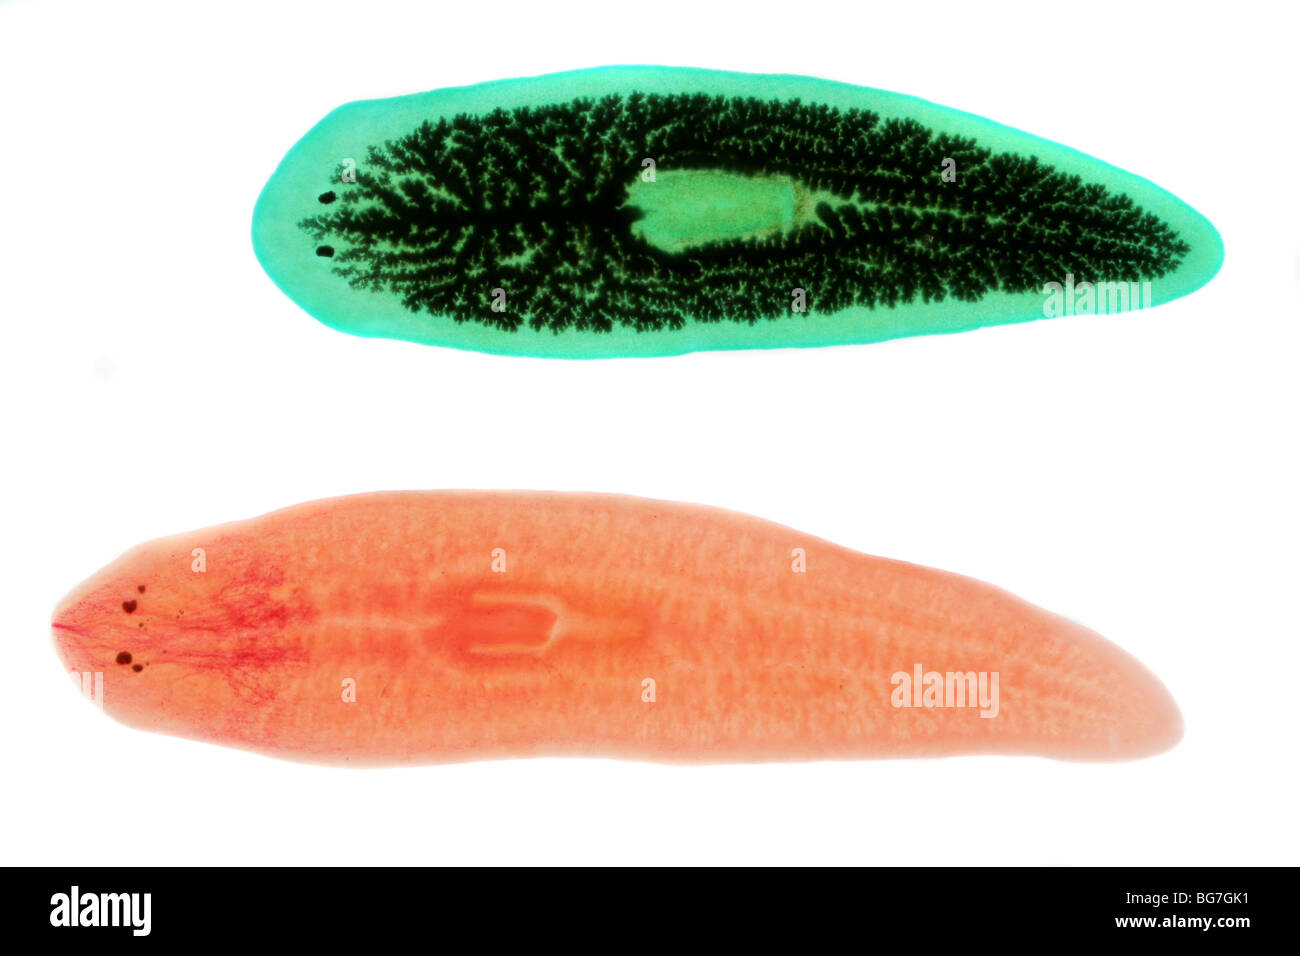 Flatworms, Dugesia (Planaria) species, one fed with carbon to reveal its digestive tract. - Stock Image